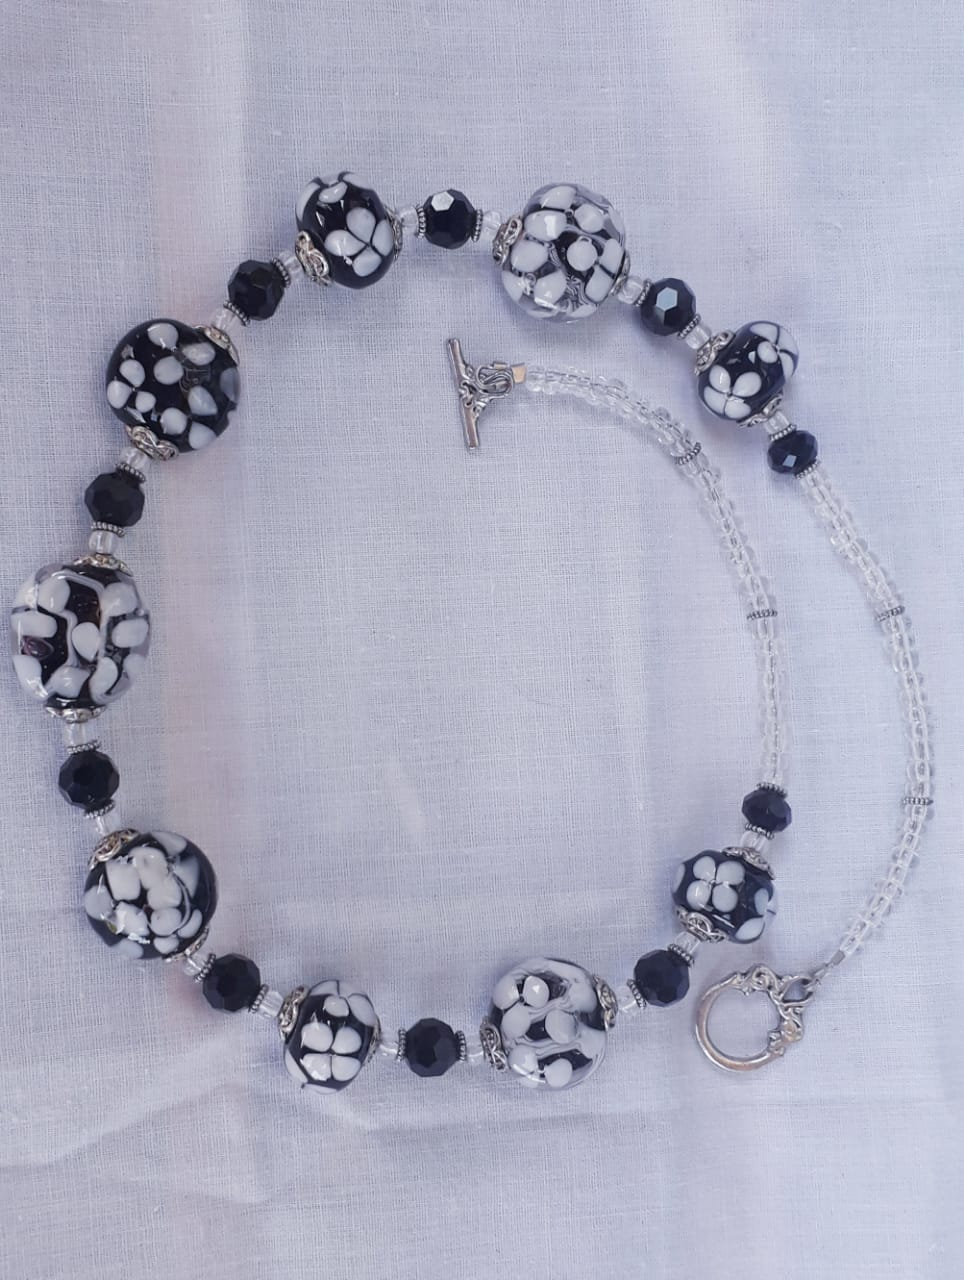 Crazy Daisy Black and White Necklace